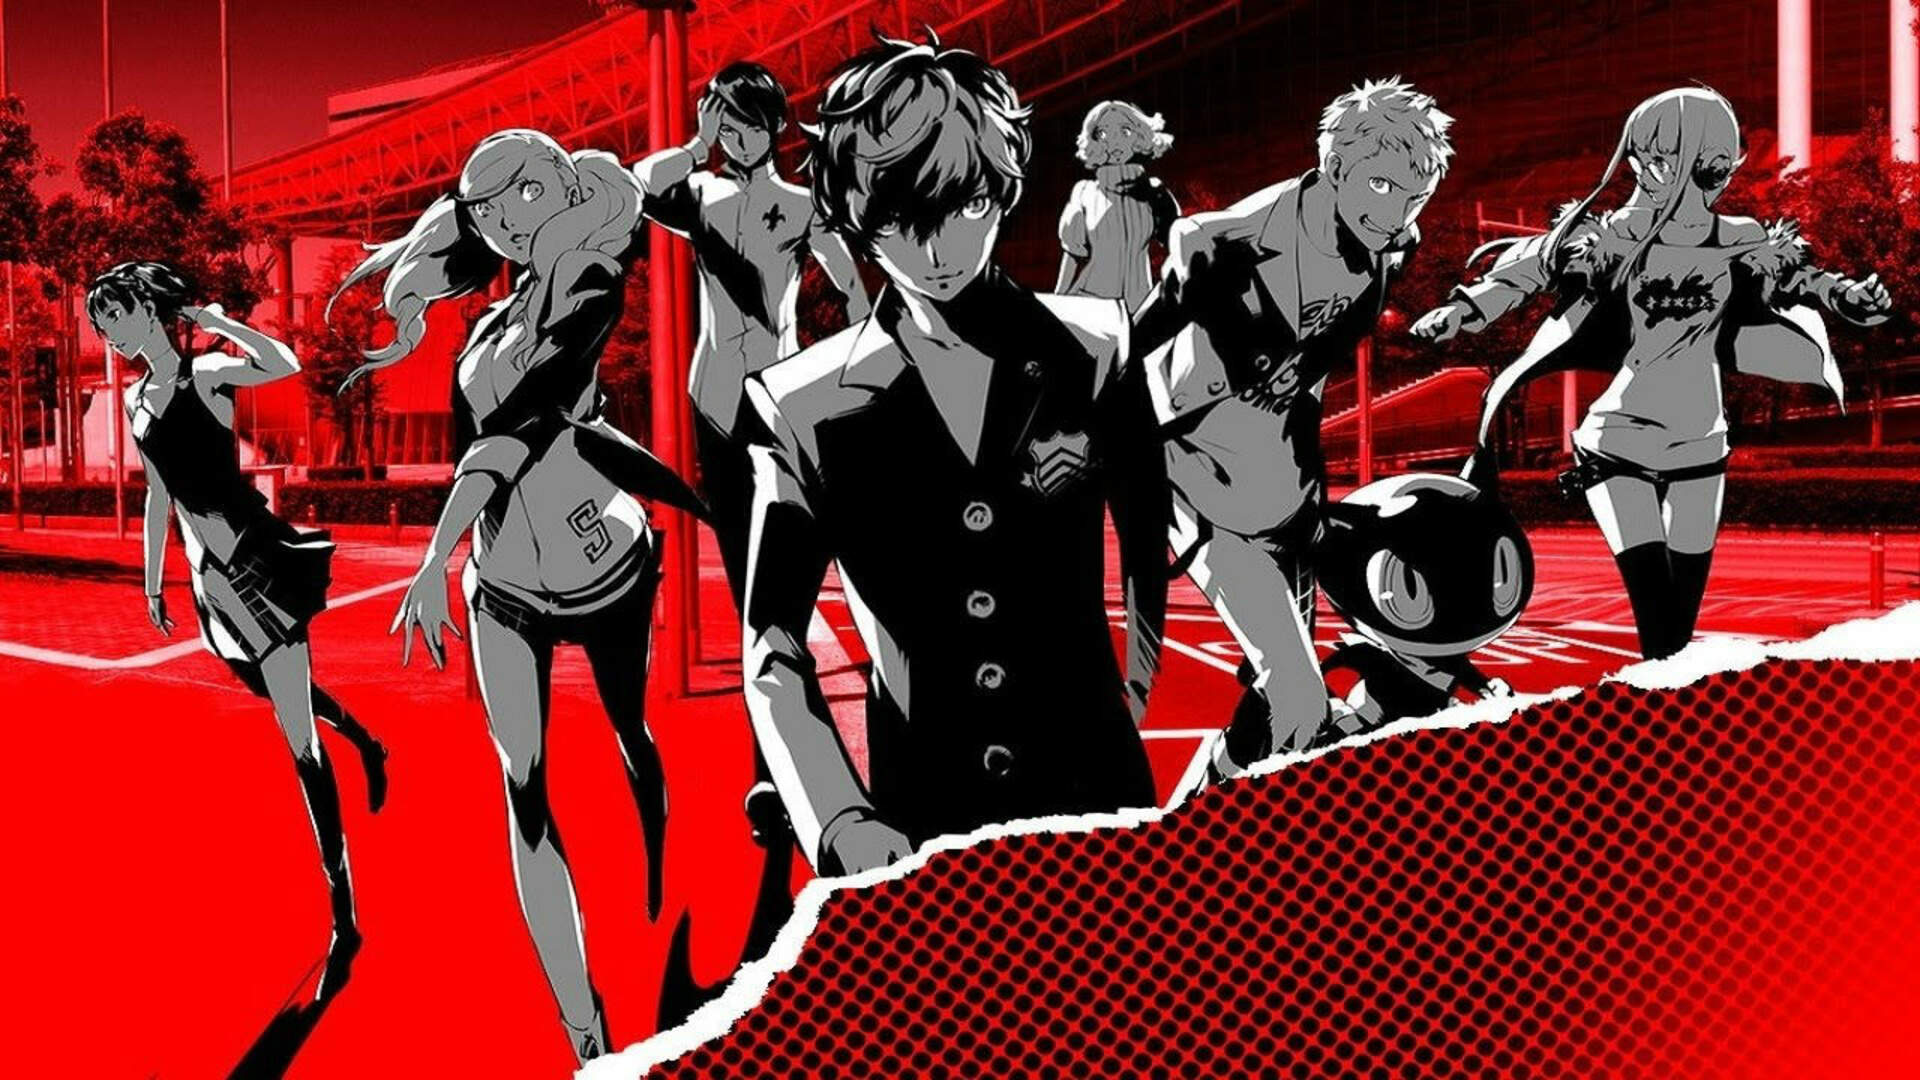 Persona 5 Royal's Western Localization Will Make Changes to One Especially Controversial Pair